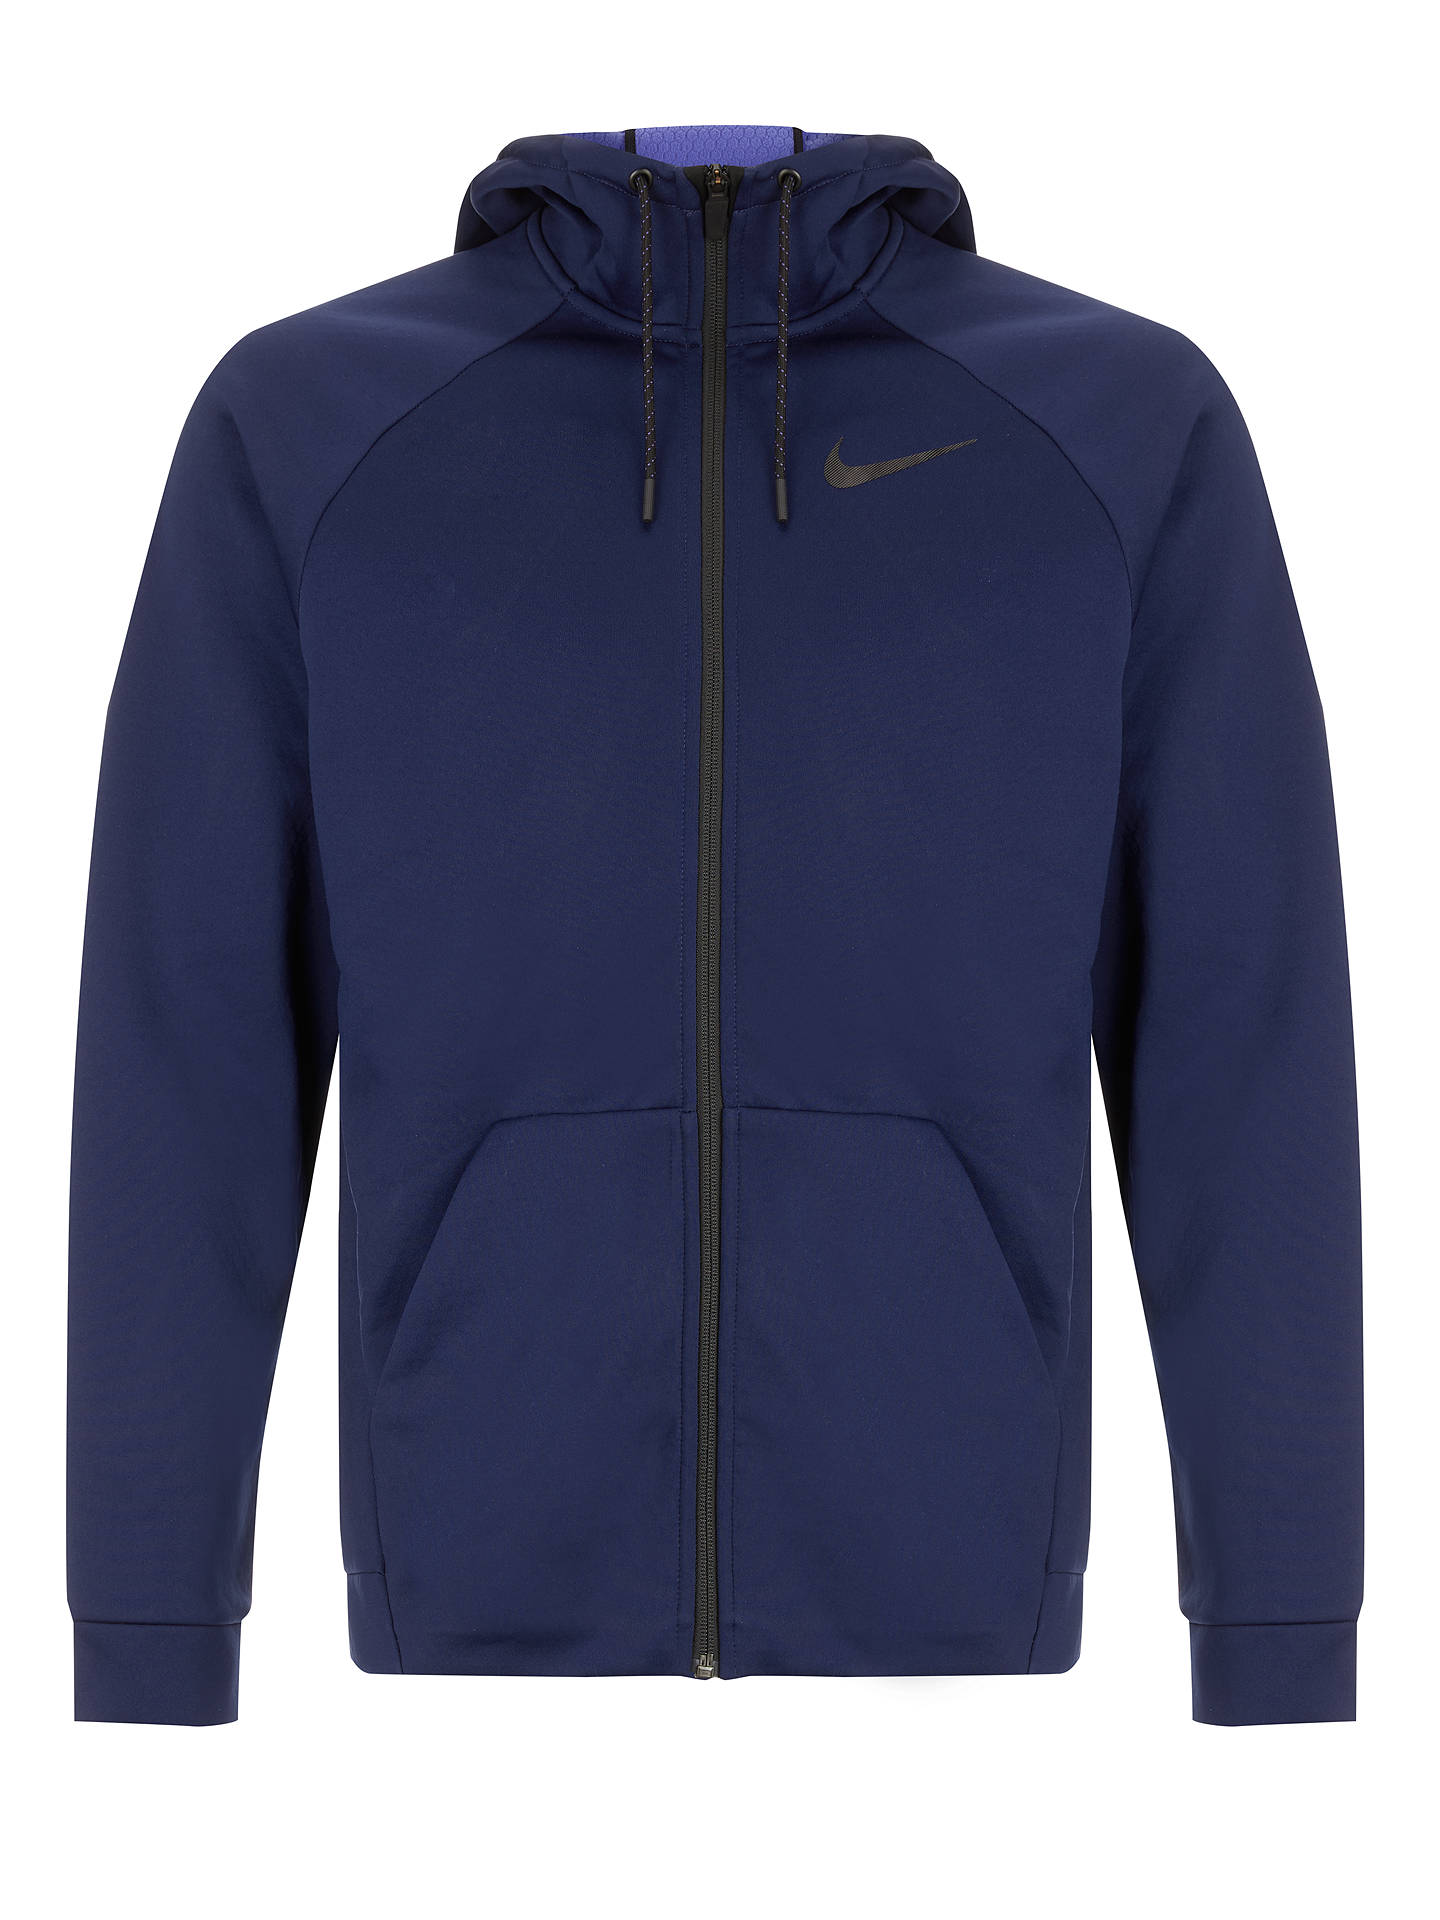 ae6a583aaf Nike Therma Sphere Training Jacket at John Lewis & Partners